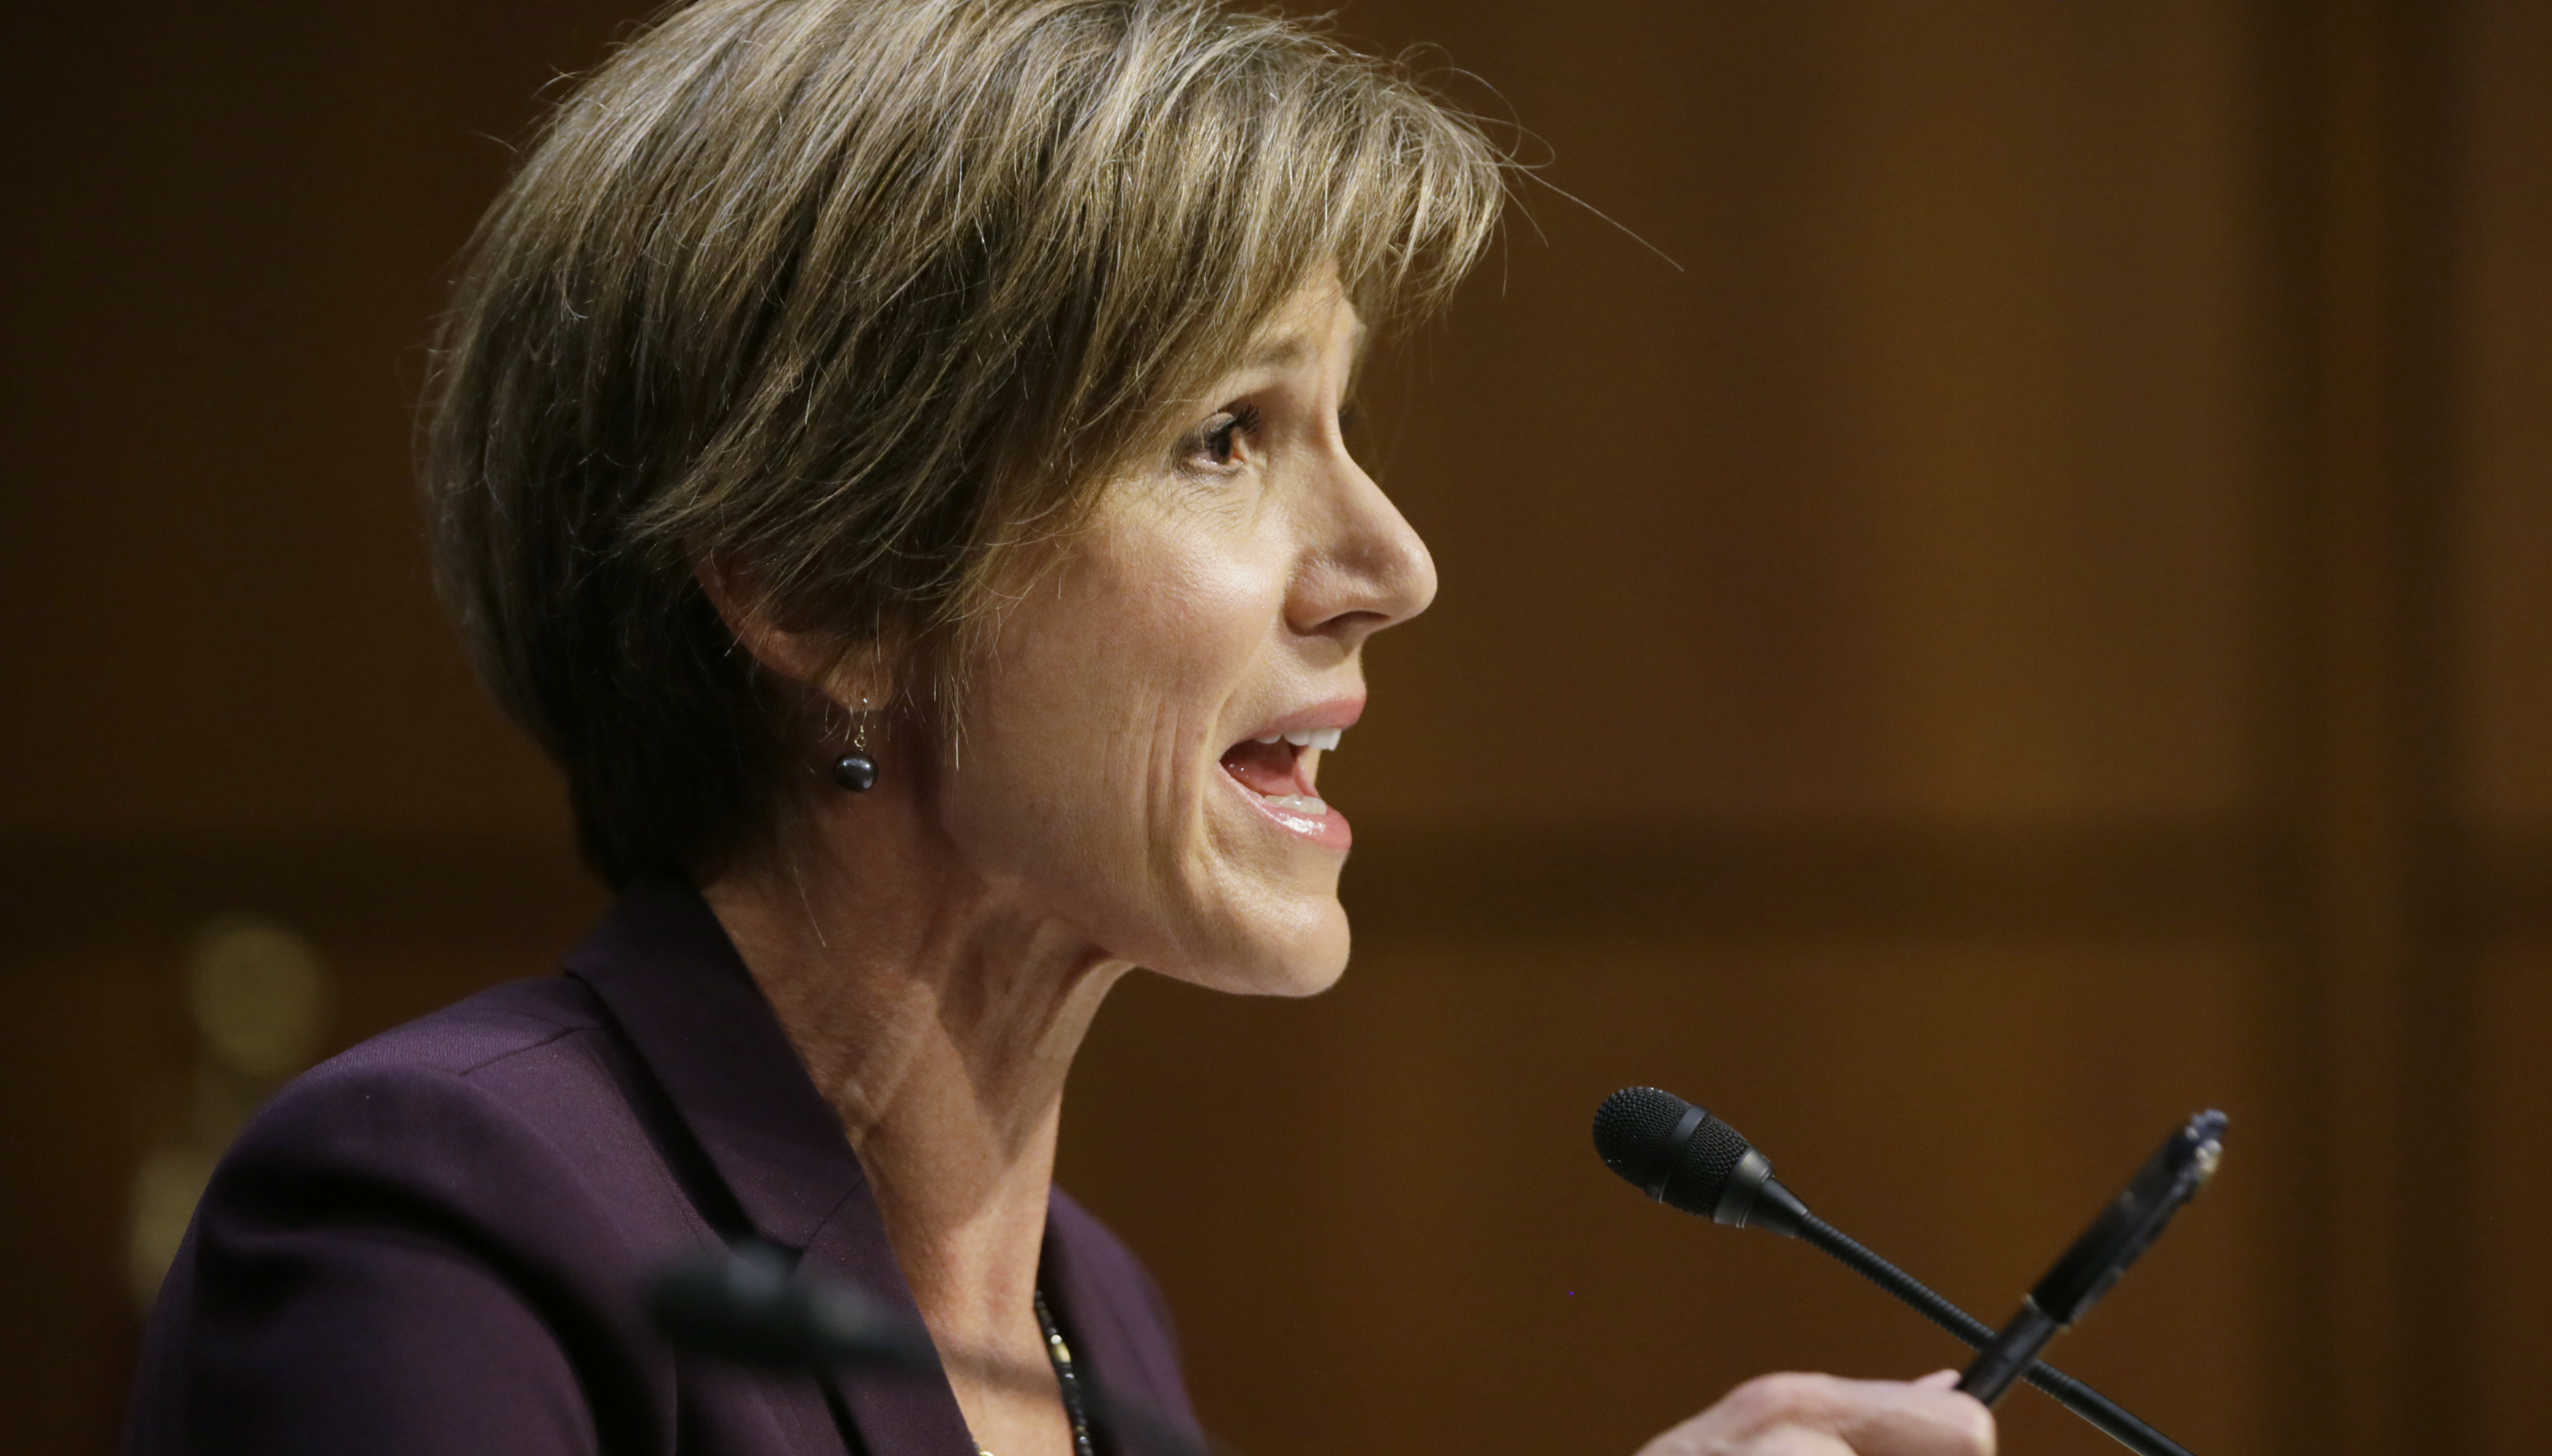 Former Deputy Attorney General Sally Yates testifies before a Senate Judiciary Committee hearing on ìRussian interference in the 2016 U.S. electionî on Capitol Hill in Washington, U .S., May 8, 2017.